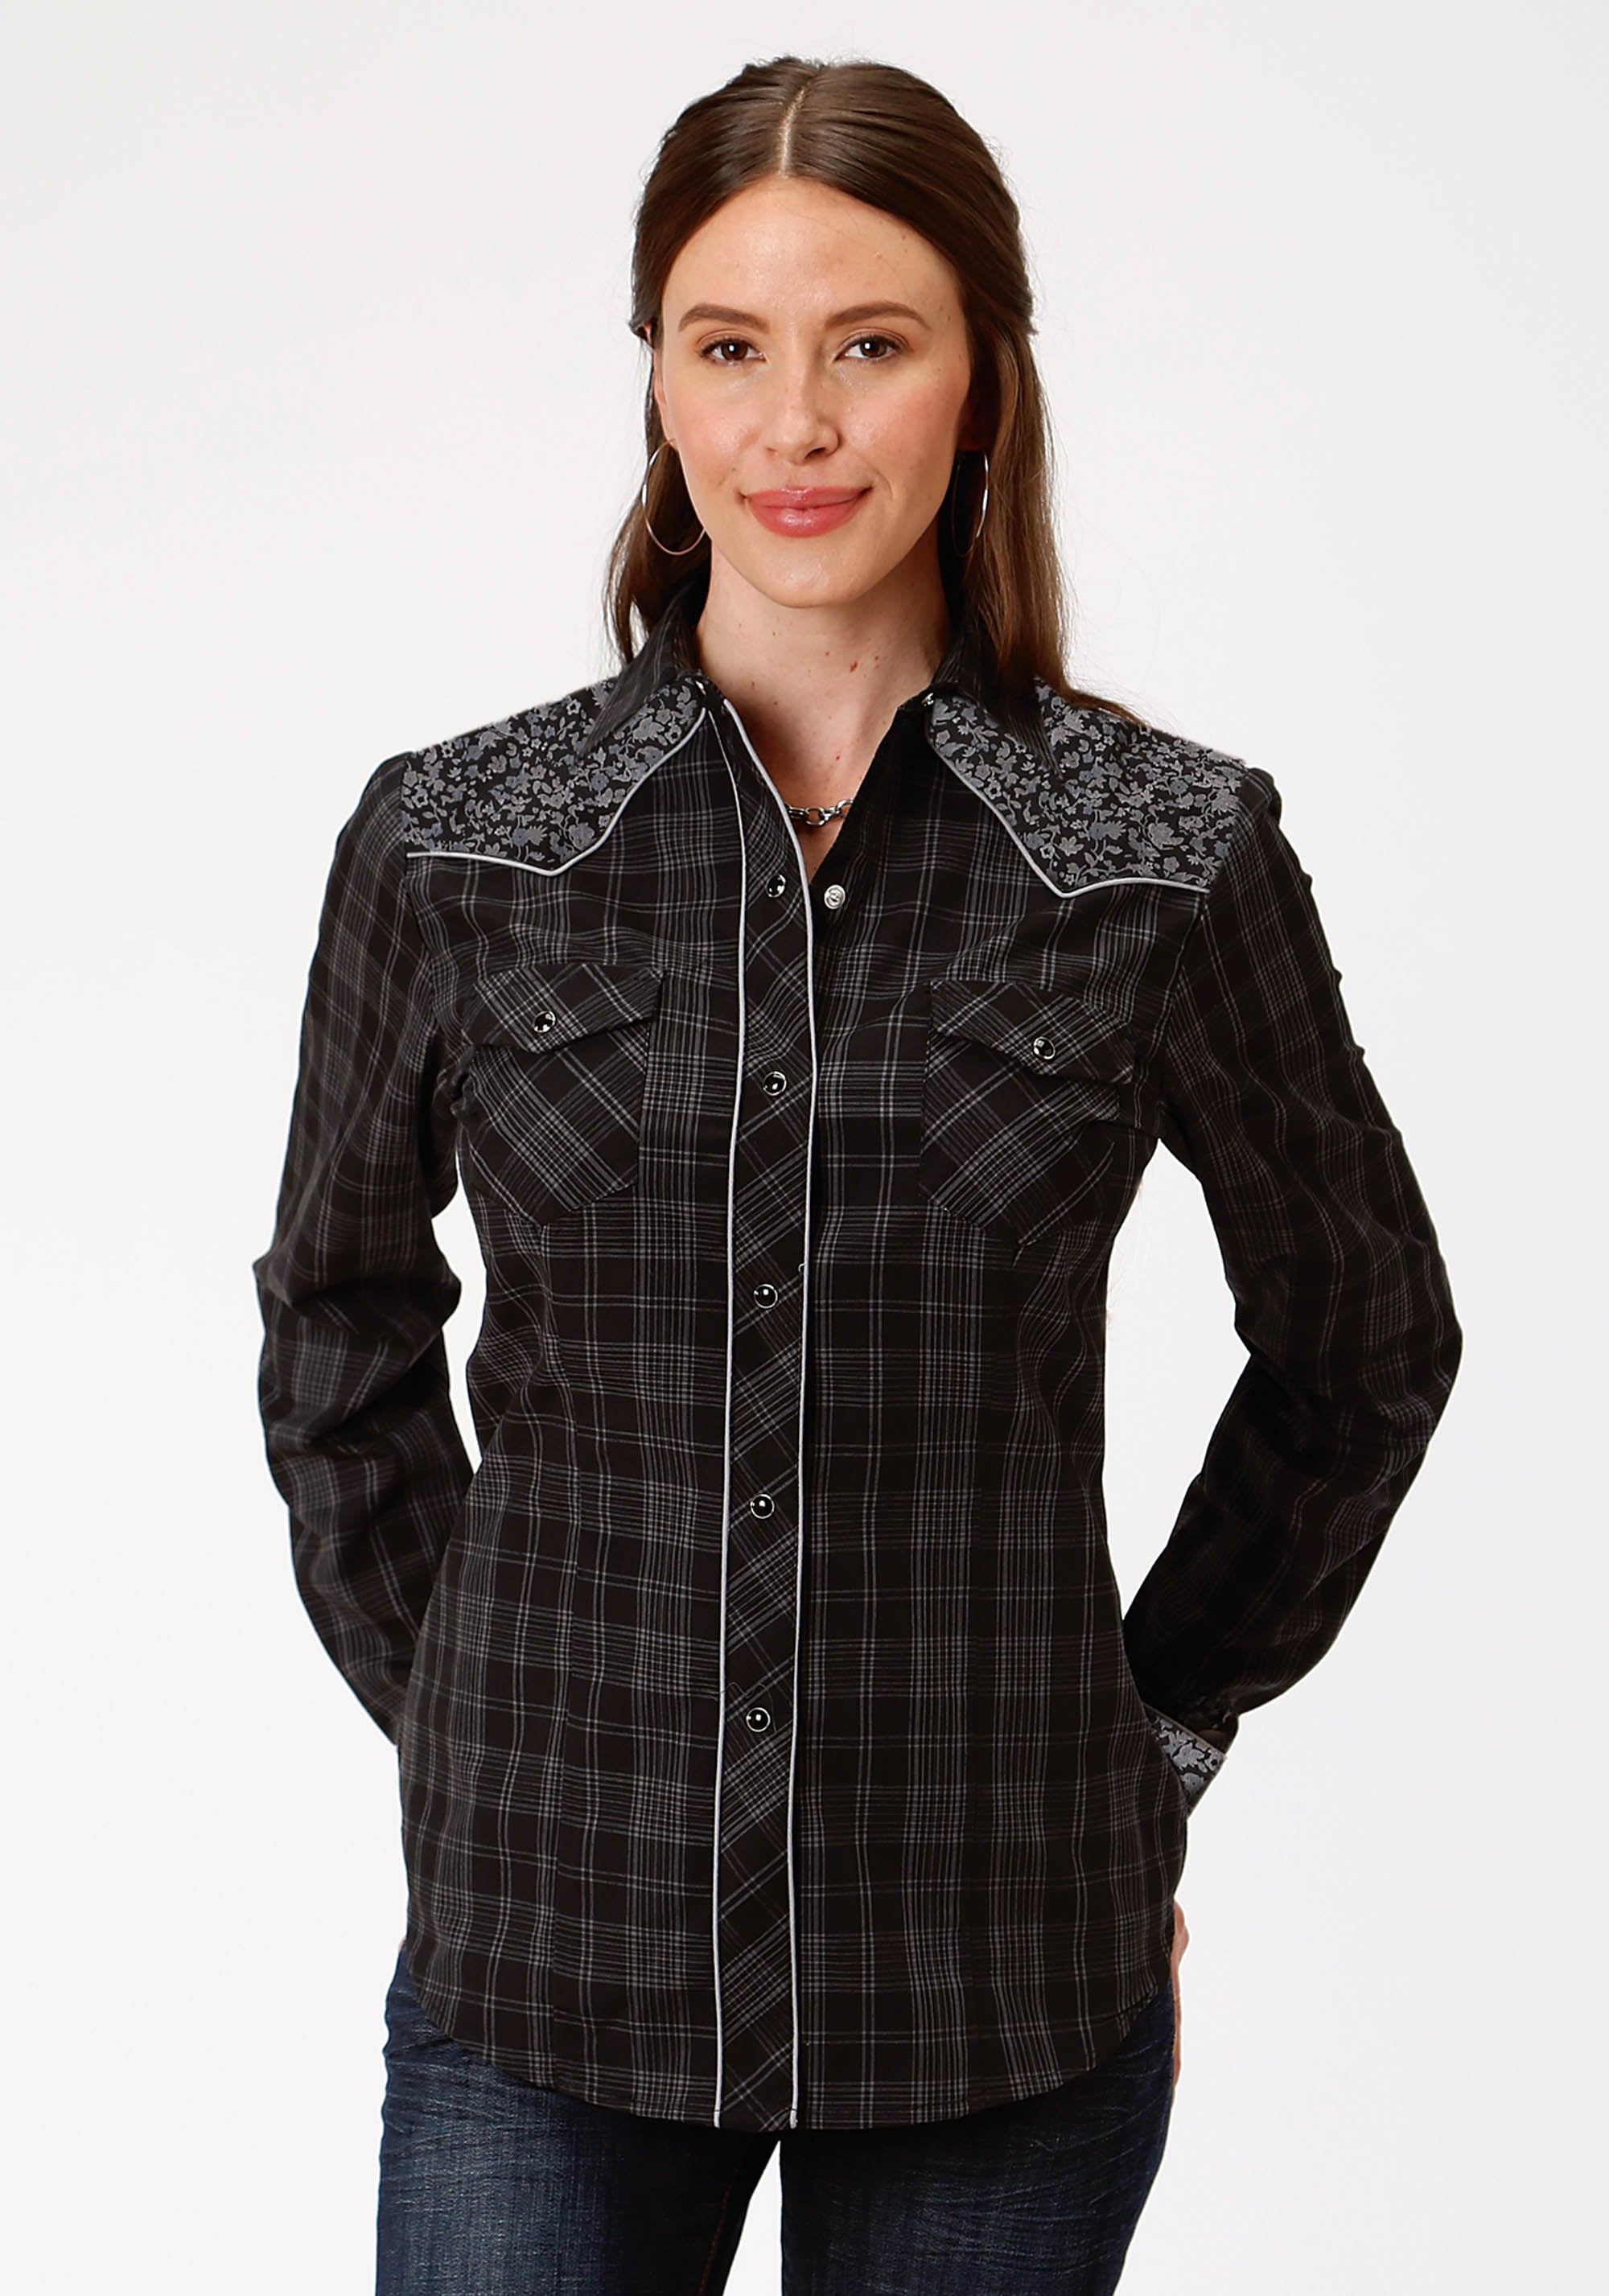 ROPER WOMENS BLACK 9951 BLACK AND GREY SMALL SCALE KARMAN SPECIAL STYLES LONG SLEEVE